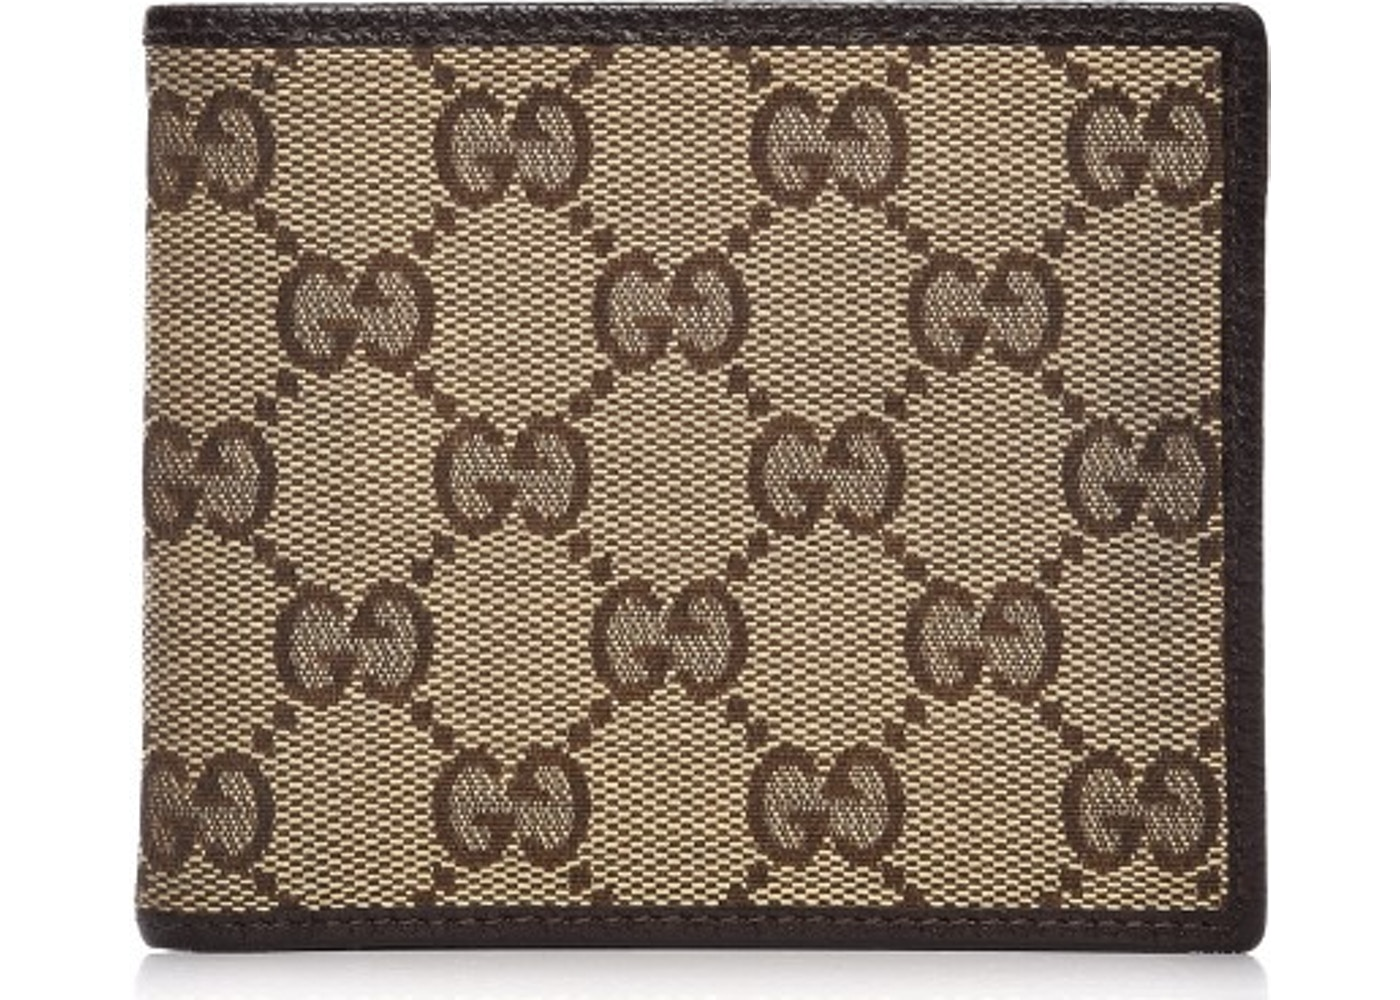 821d37528162 Gucci Mens Bifold Wallet Monogram GG Brown Beige. Monogram GG Brown Beige